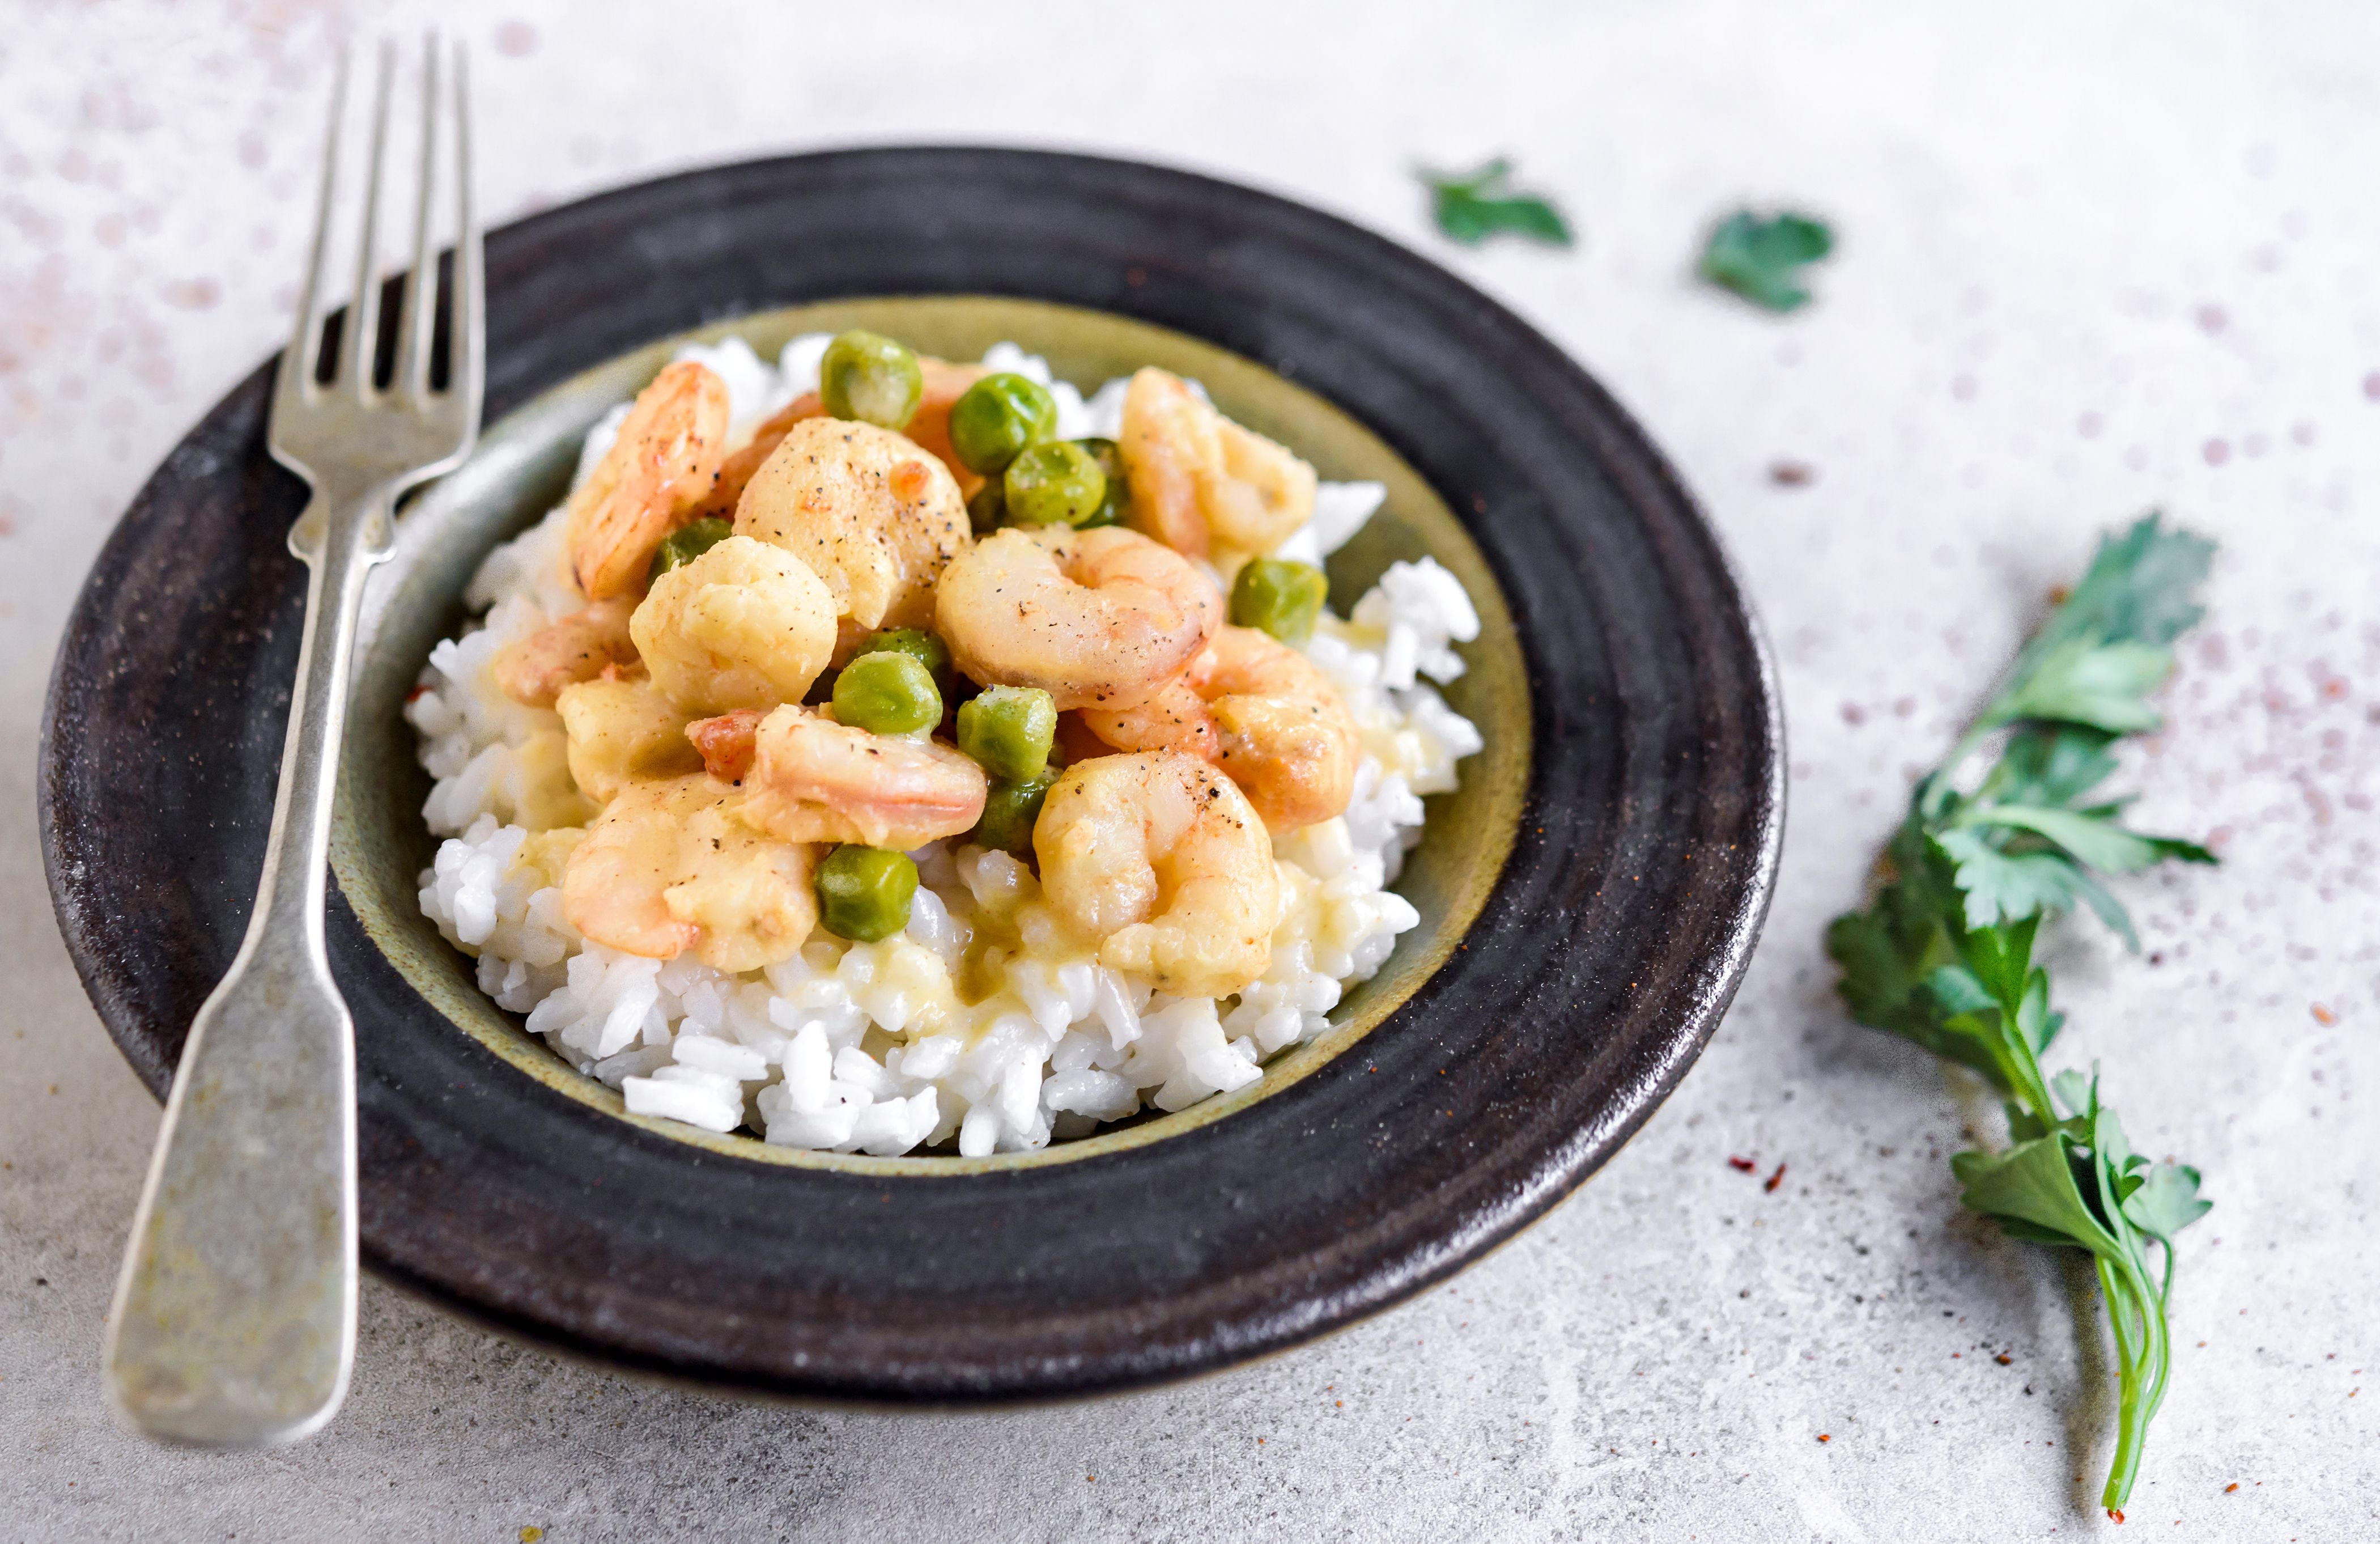 Shrimp scampi with rice and peas in a bowl